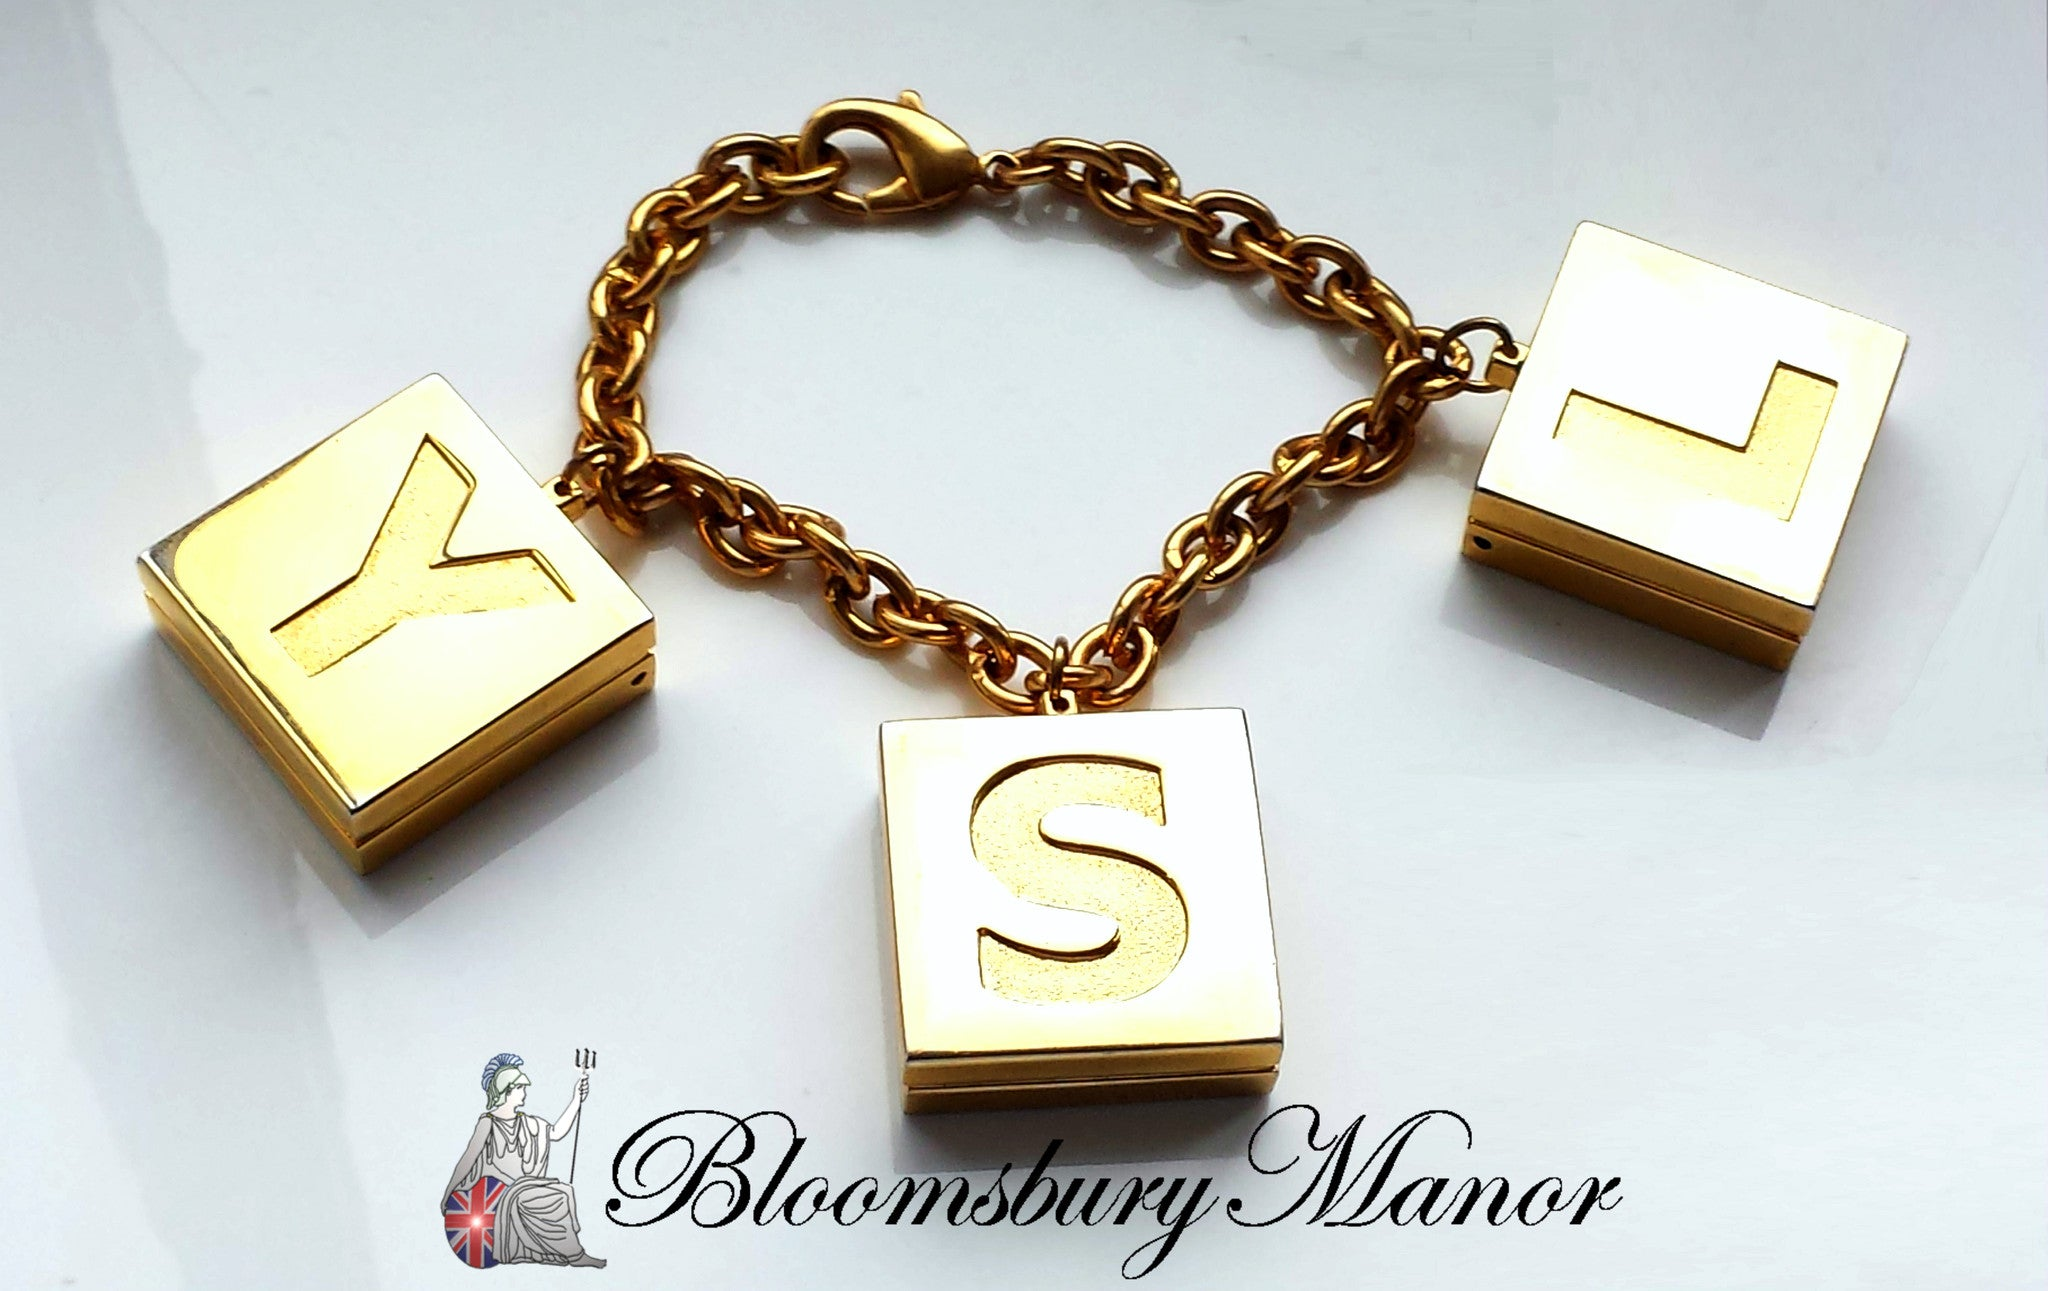 ee3a949d4b2 Vintage YSL Yves Saint Laurent Gold Tone Limited Edition Bracelet with -  Bloomsbury Manor Ltd